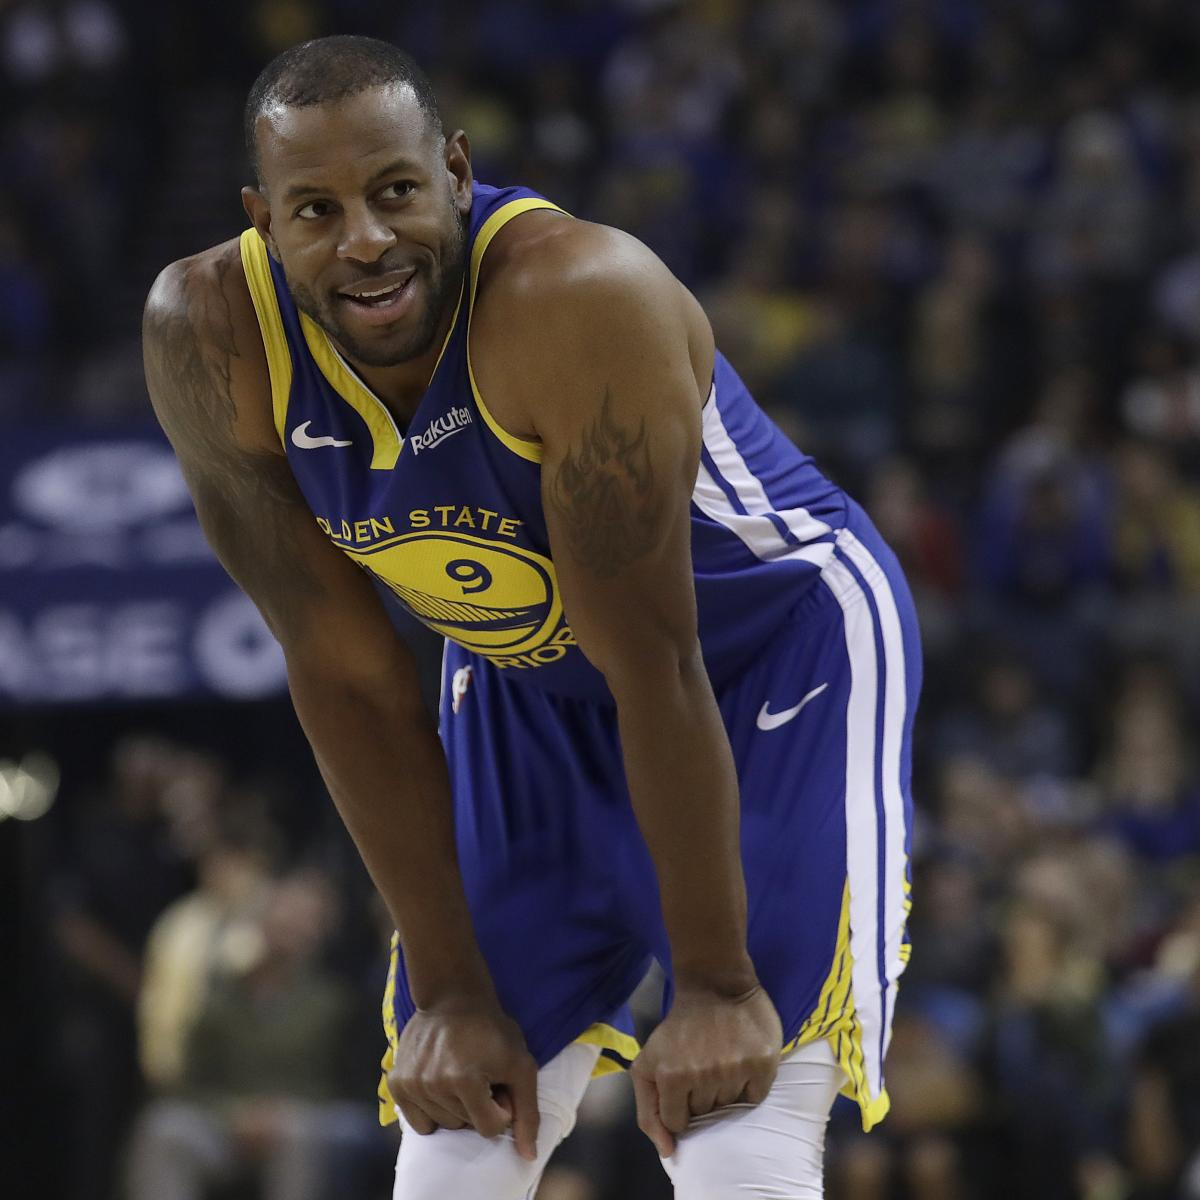 Warriors Come Out To Play Bleacher Report: Warriors News: Andre Iguodala Says He Will 'Max Out' At 3